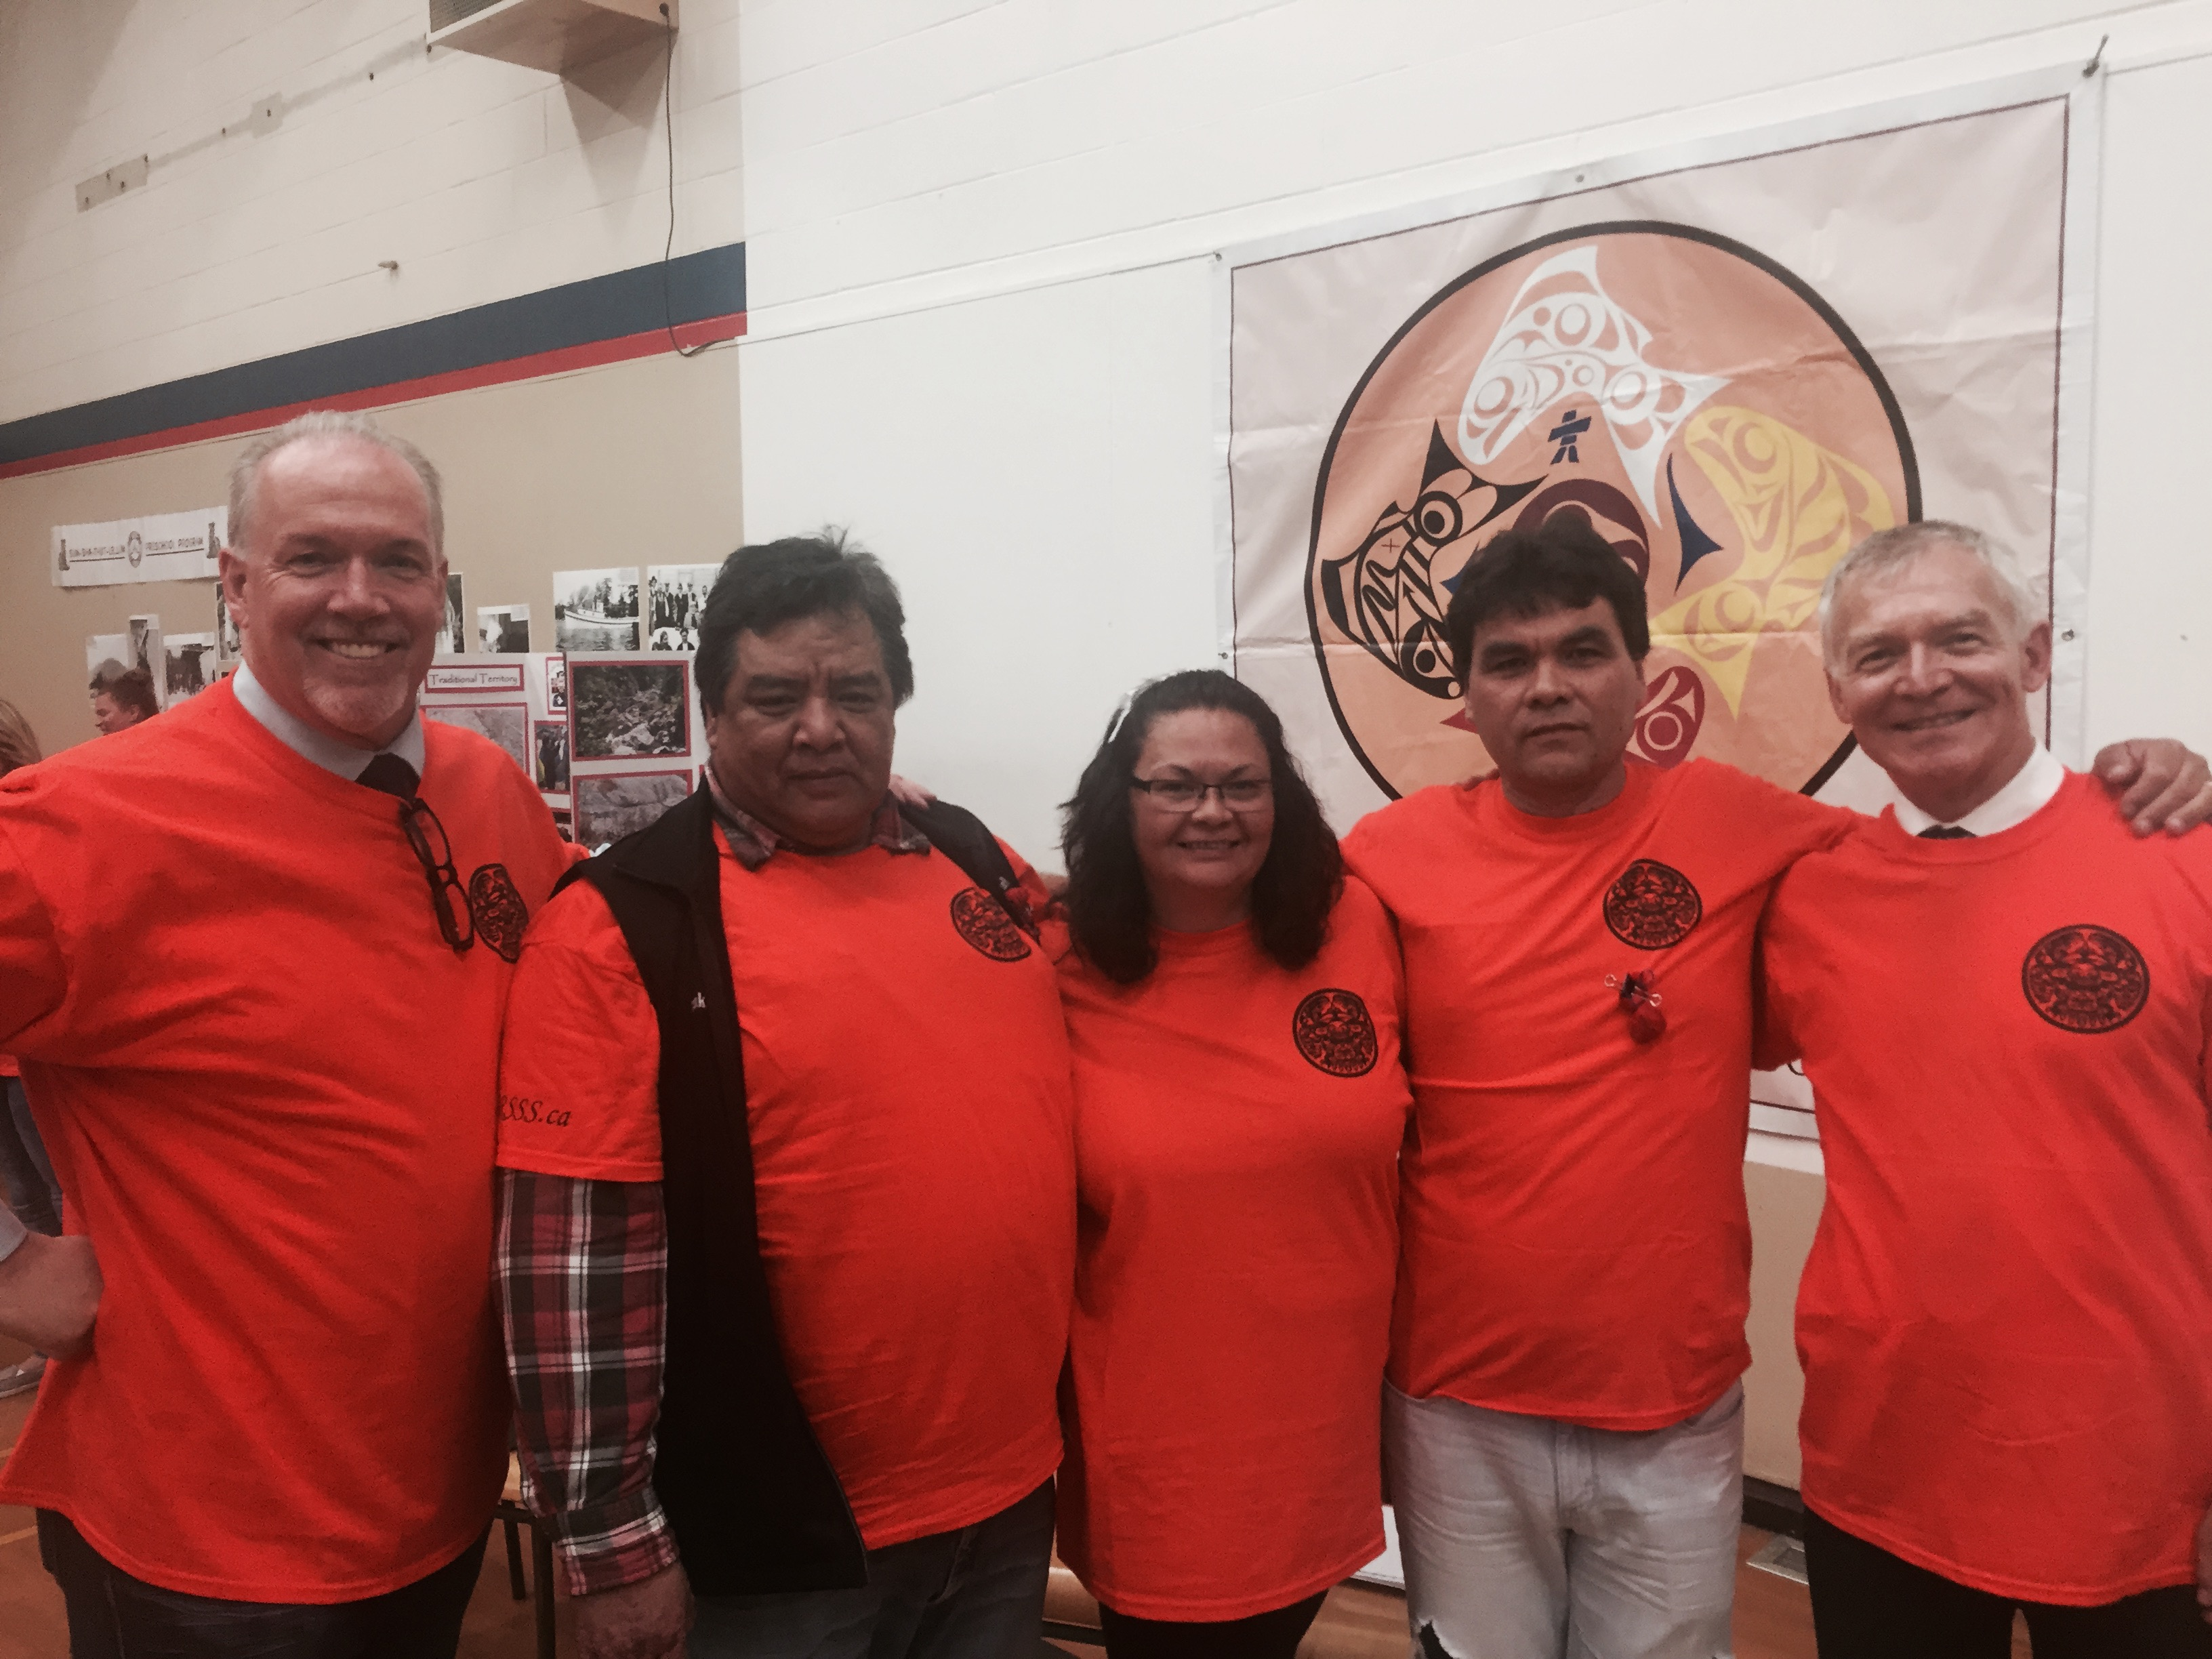 John Horgan, Rick Peters, Scia'new First Nations Member and Lead Drummer, Bernice Millette, Scia'new Council Member, Russ Chipps, Scia'new, Chief, and MLA Scott Fraser, Alberni-Pacific Rim, Opposition Spokesperson for Aboriginal Relations and Reconciliation